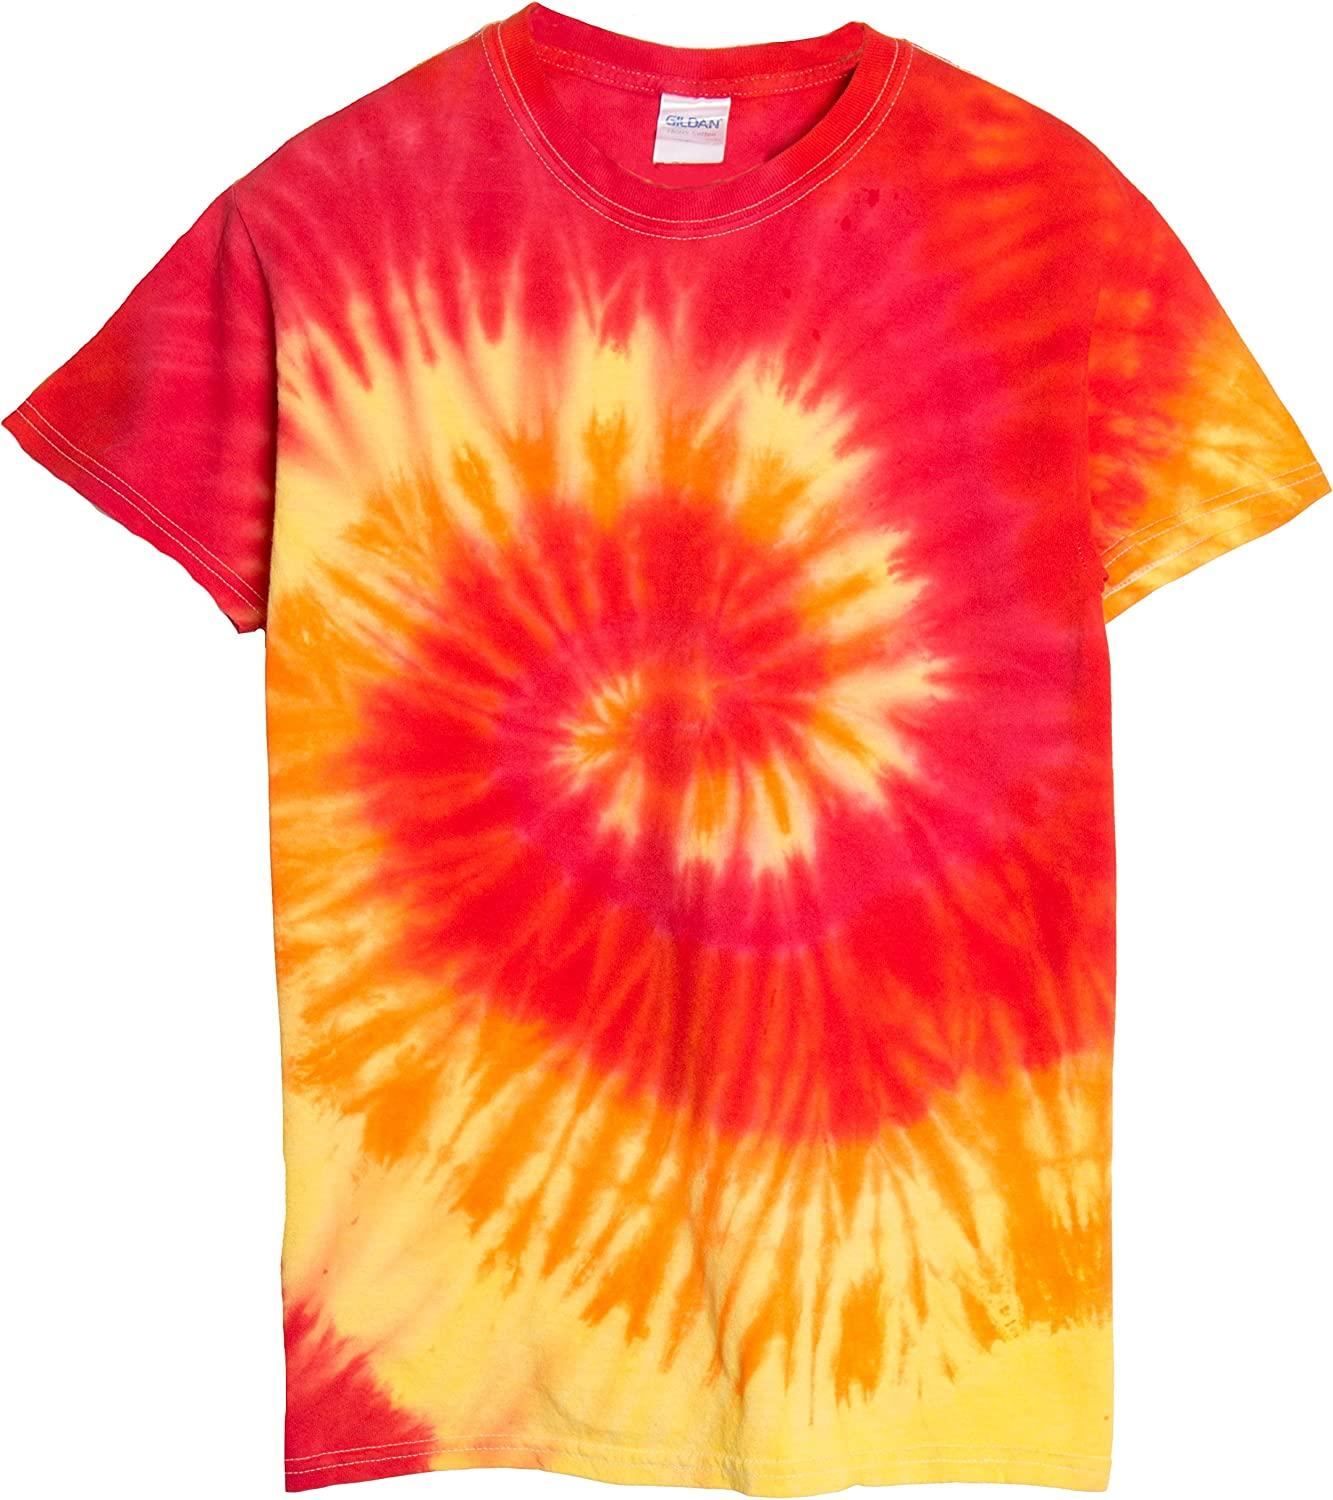 Barbara Tie Dye T-Shirts Adult SM Sta XXXL 100/% Cotton Colortone Gildan